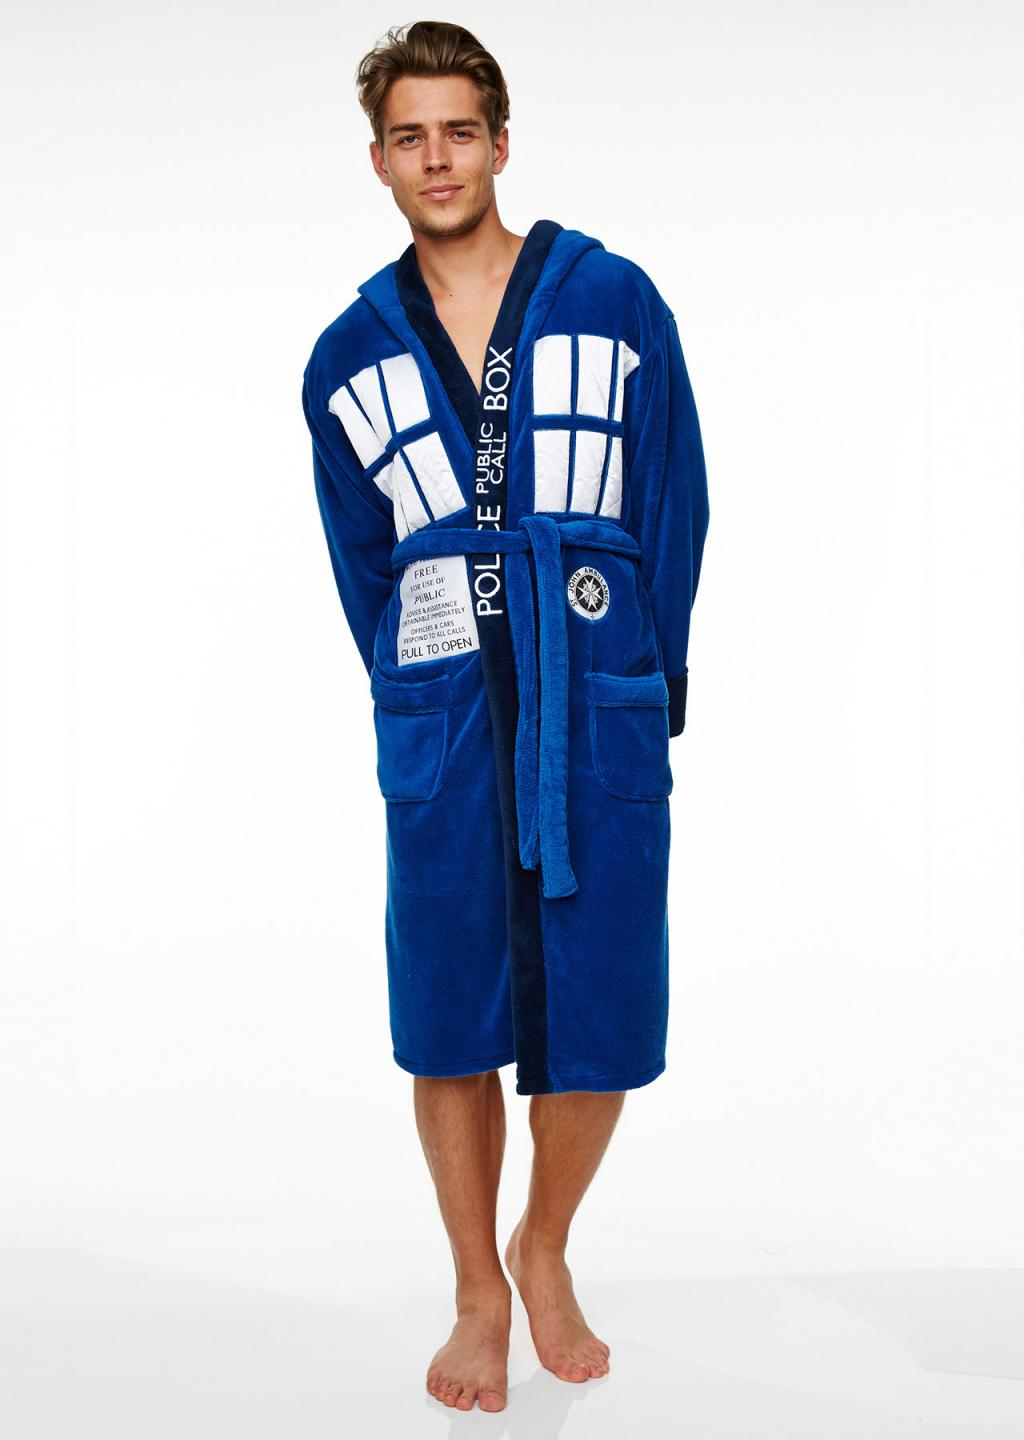 DOCTOR WHO - Peignoir - Tardis - Adulte - Taille Unique